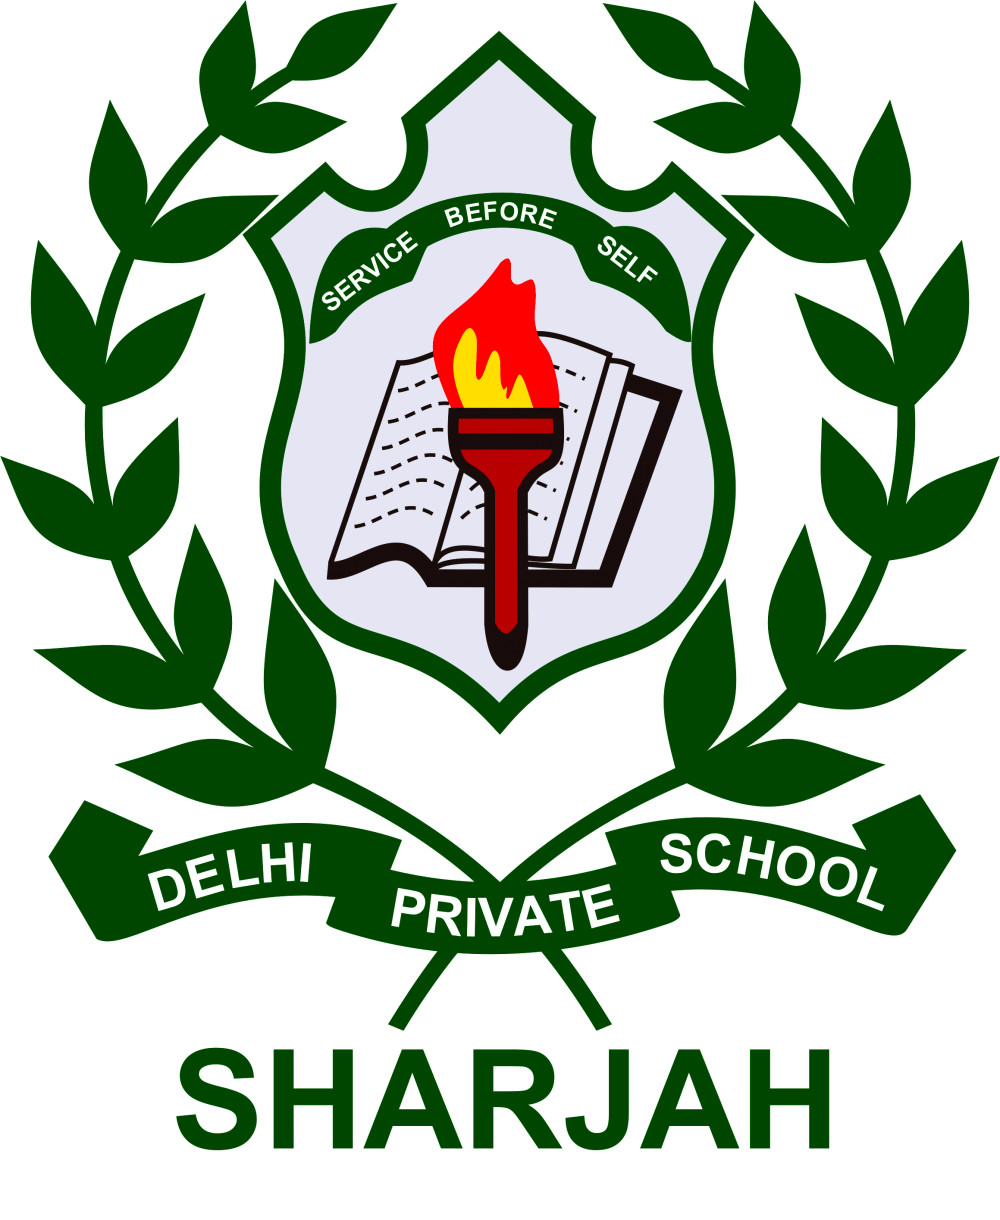 DPS Sharjah.jpg